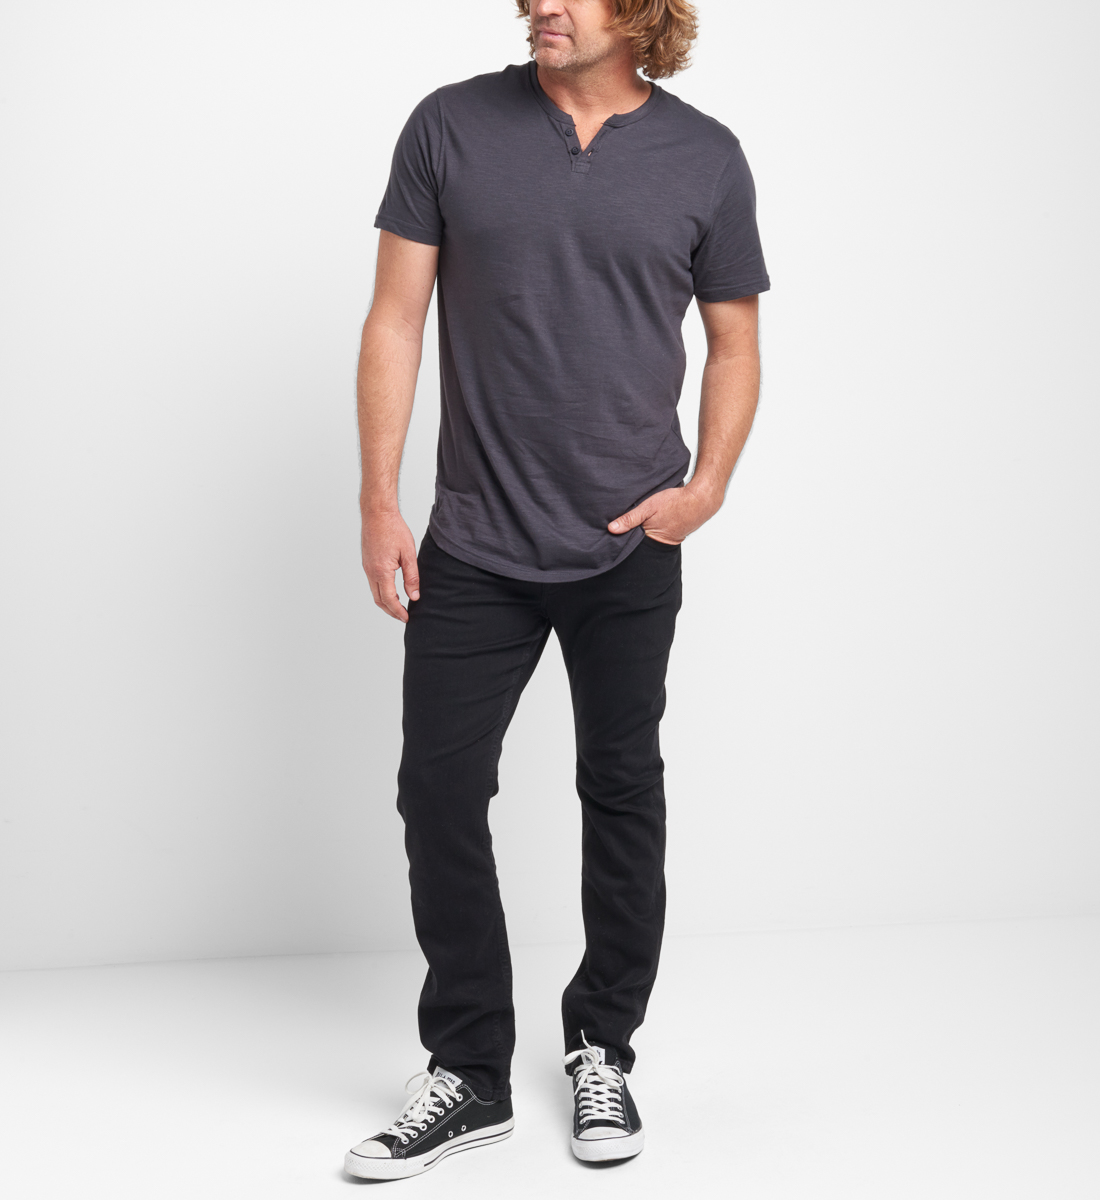 Brickley Short-Sleeve Tee, , hi-res